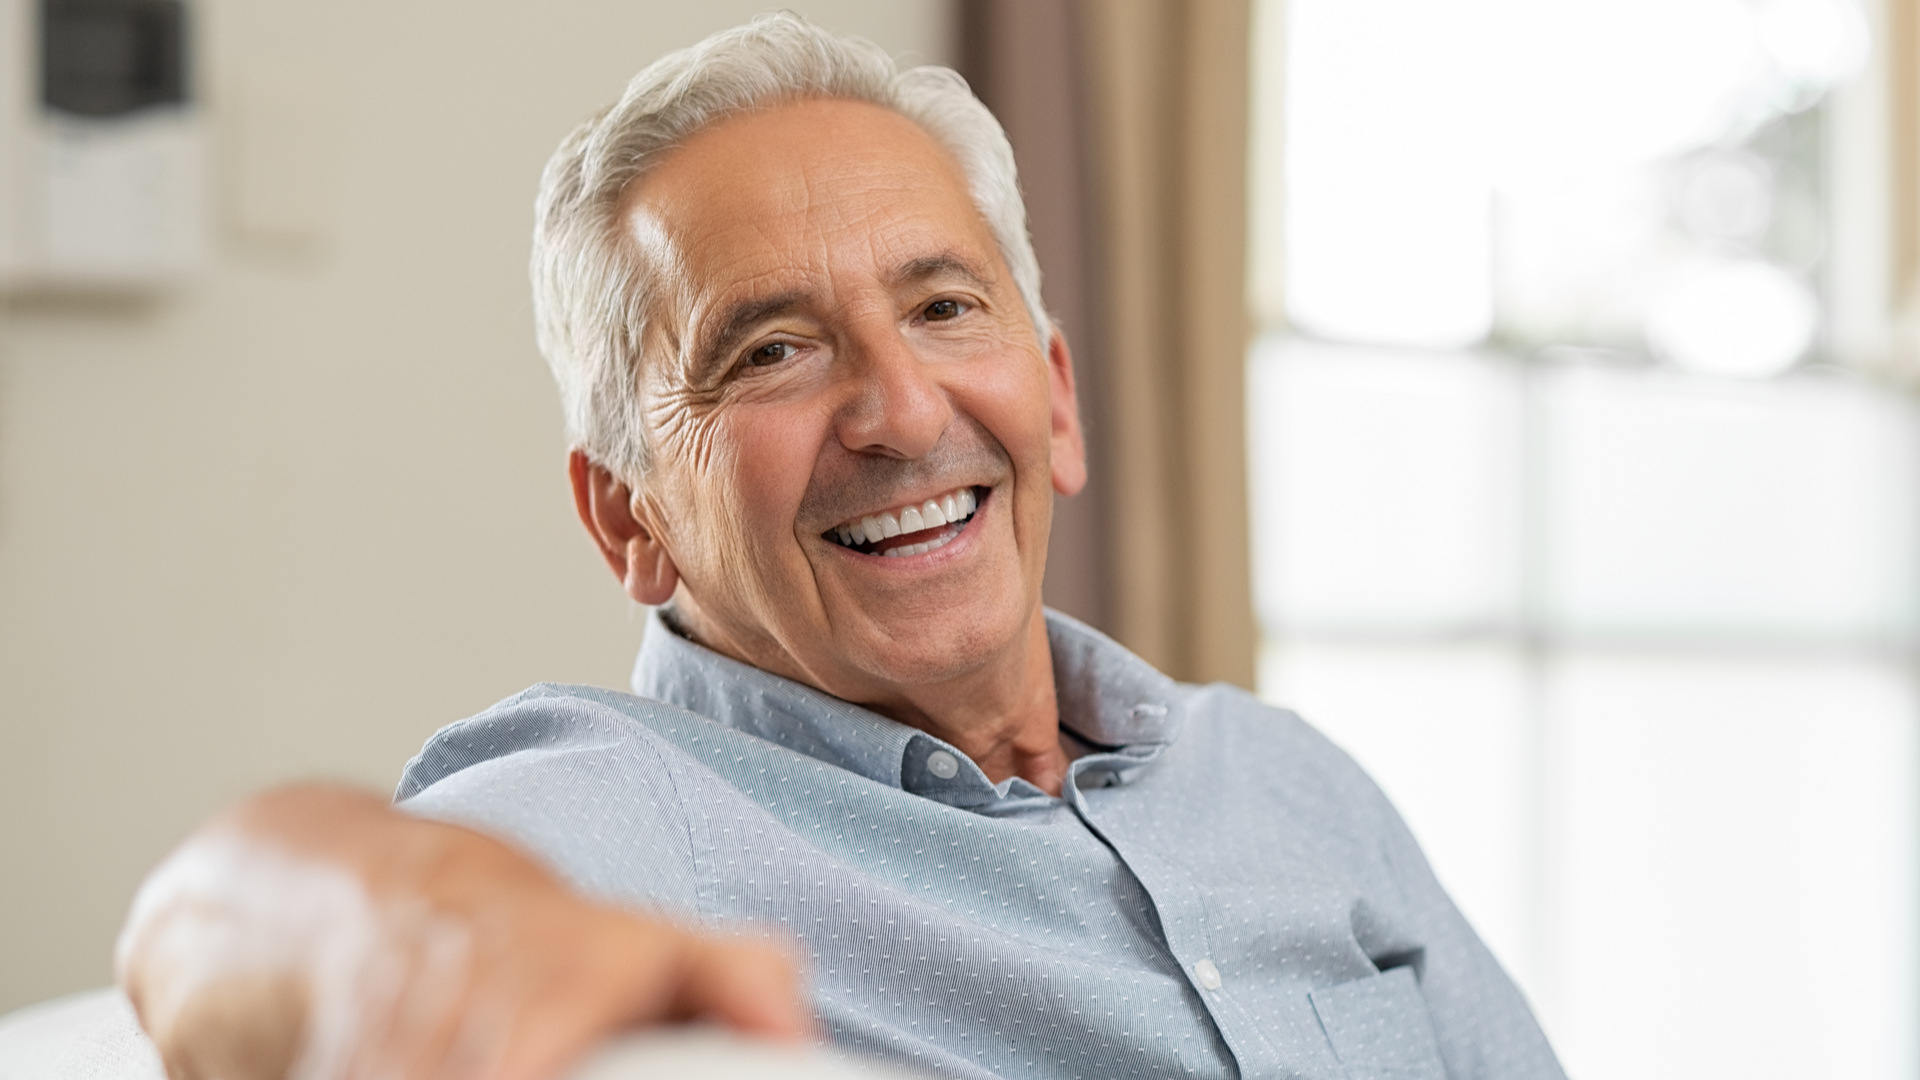 This image shows a seated man, smiling. Catheters for men can be used safely and effectively when properly sized and with the proper style.